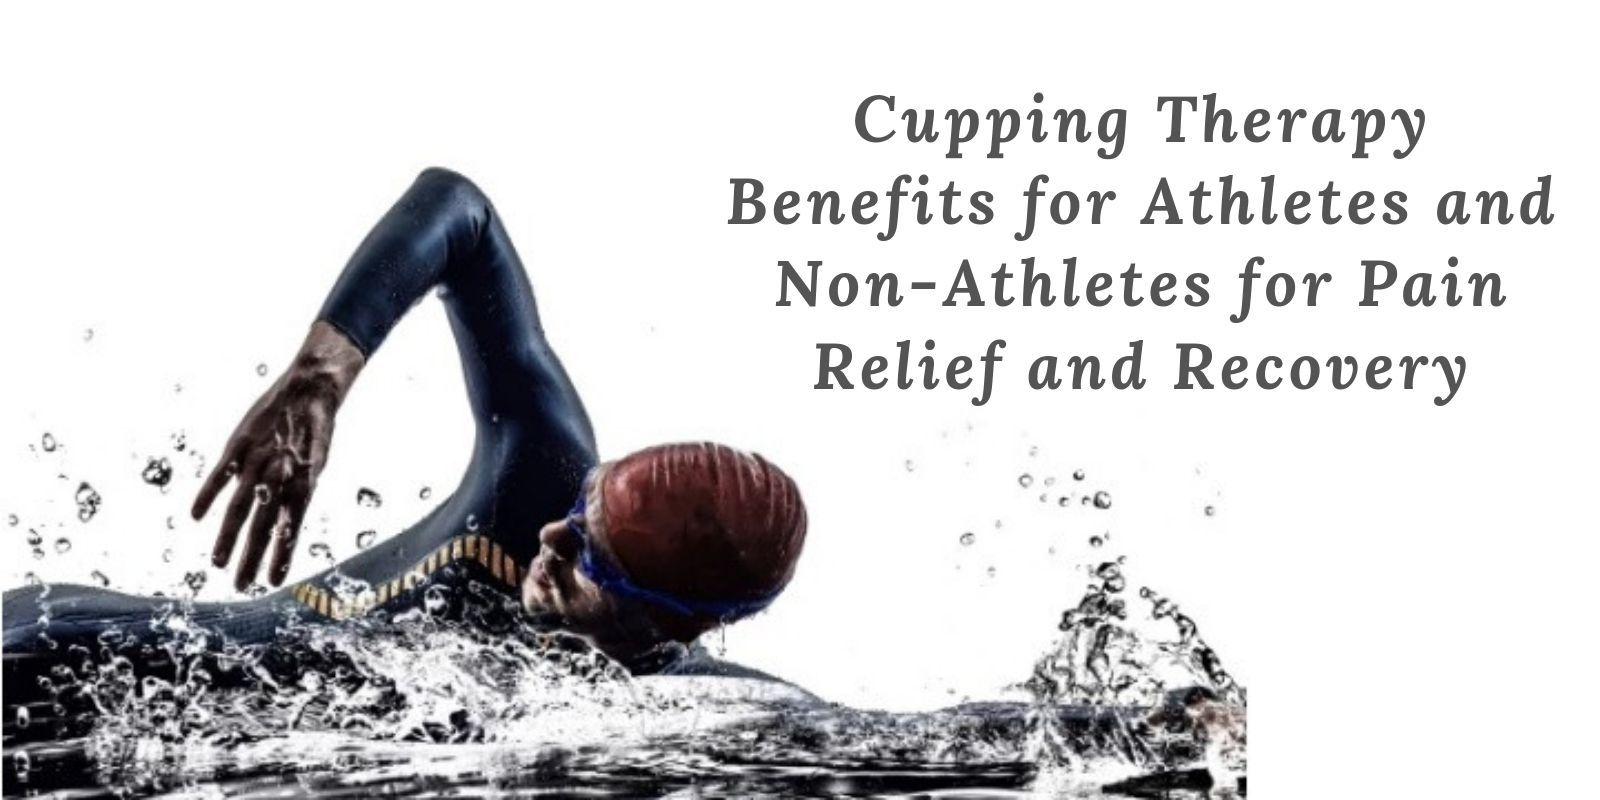 Cupping Therapy Benefits for Athletes and Non-Athletes for Pain Relief and Recovery